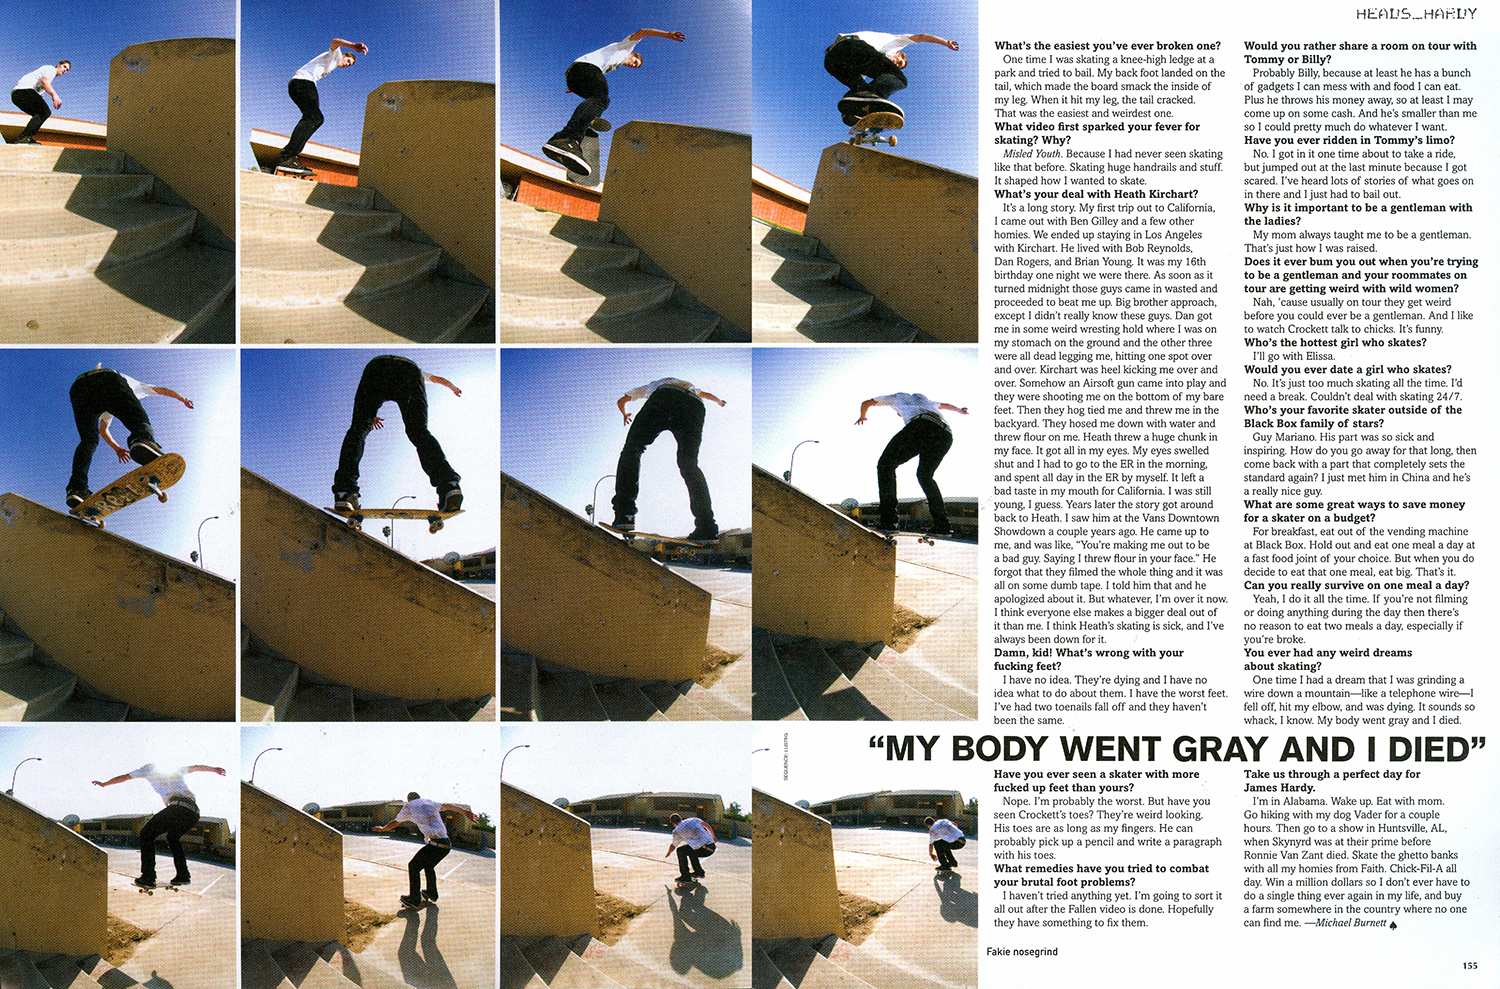 28_james_hardy_heads_interview_thrasher.jpg